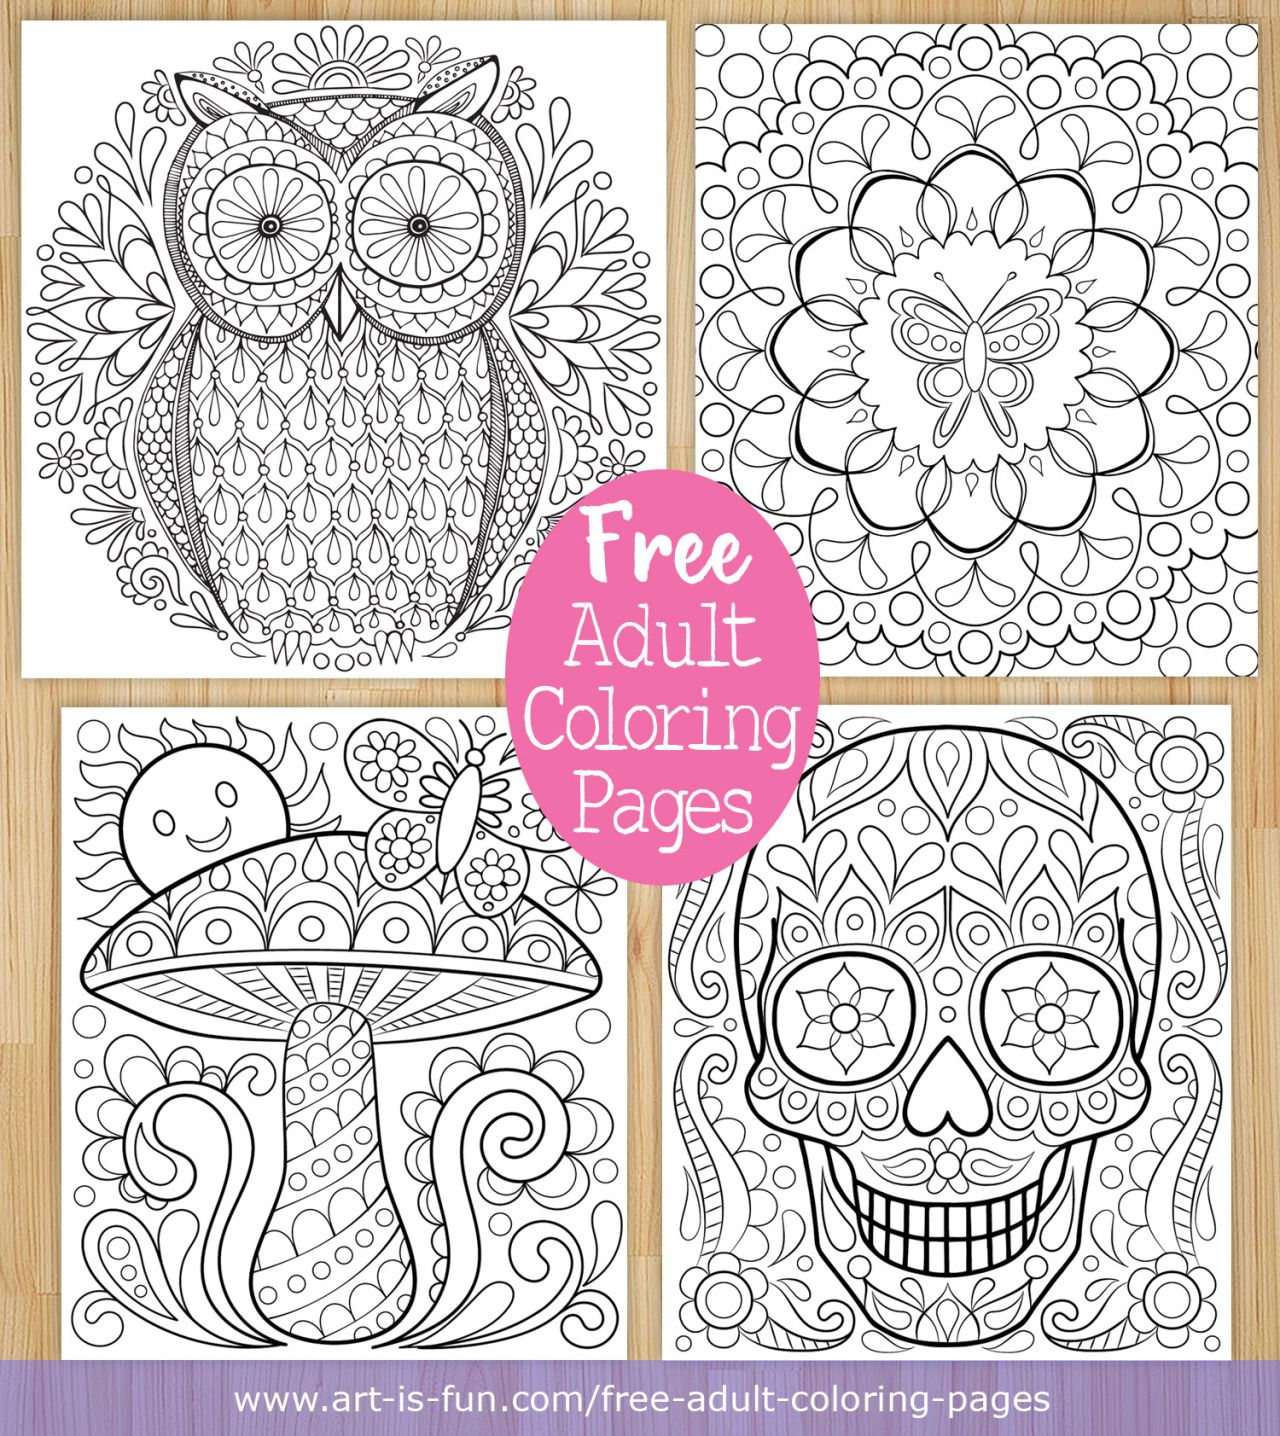 Free Printable Adult Coloring Pages By Thaneeya McArdle Art